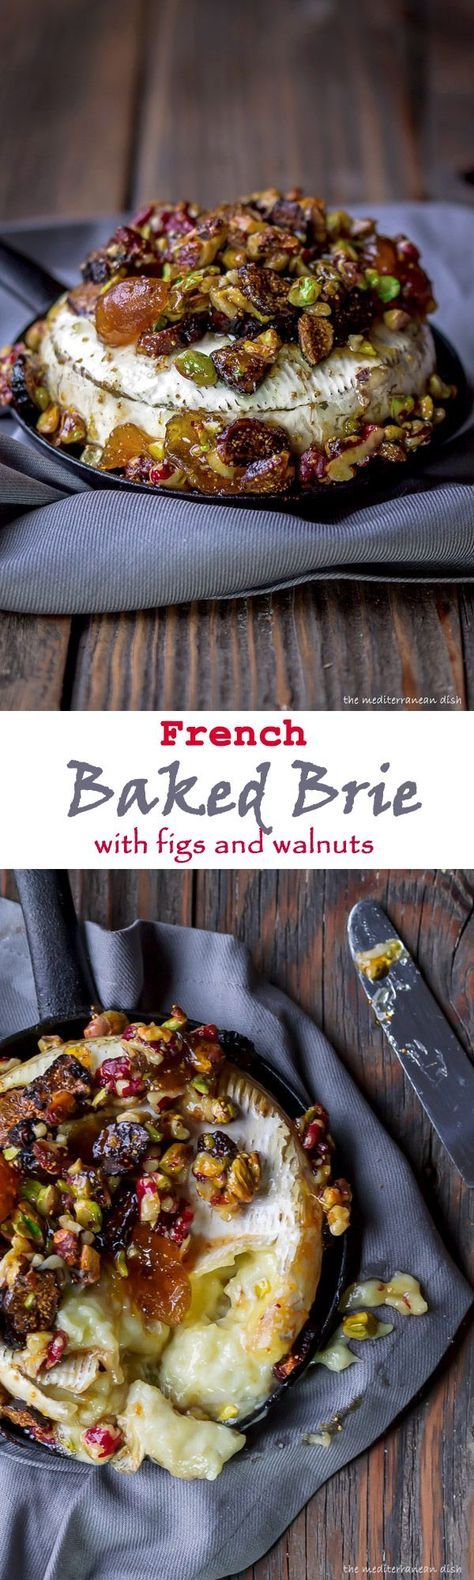 French Baked Brie Recipe with Figs, Walnuts and Pistachios from The Mediterranean Dish.